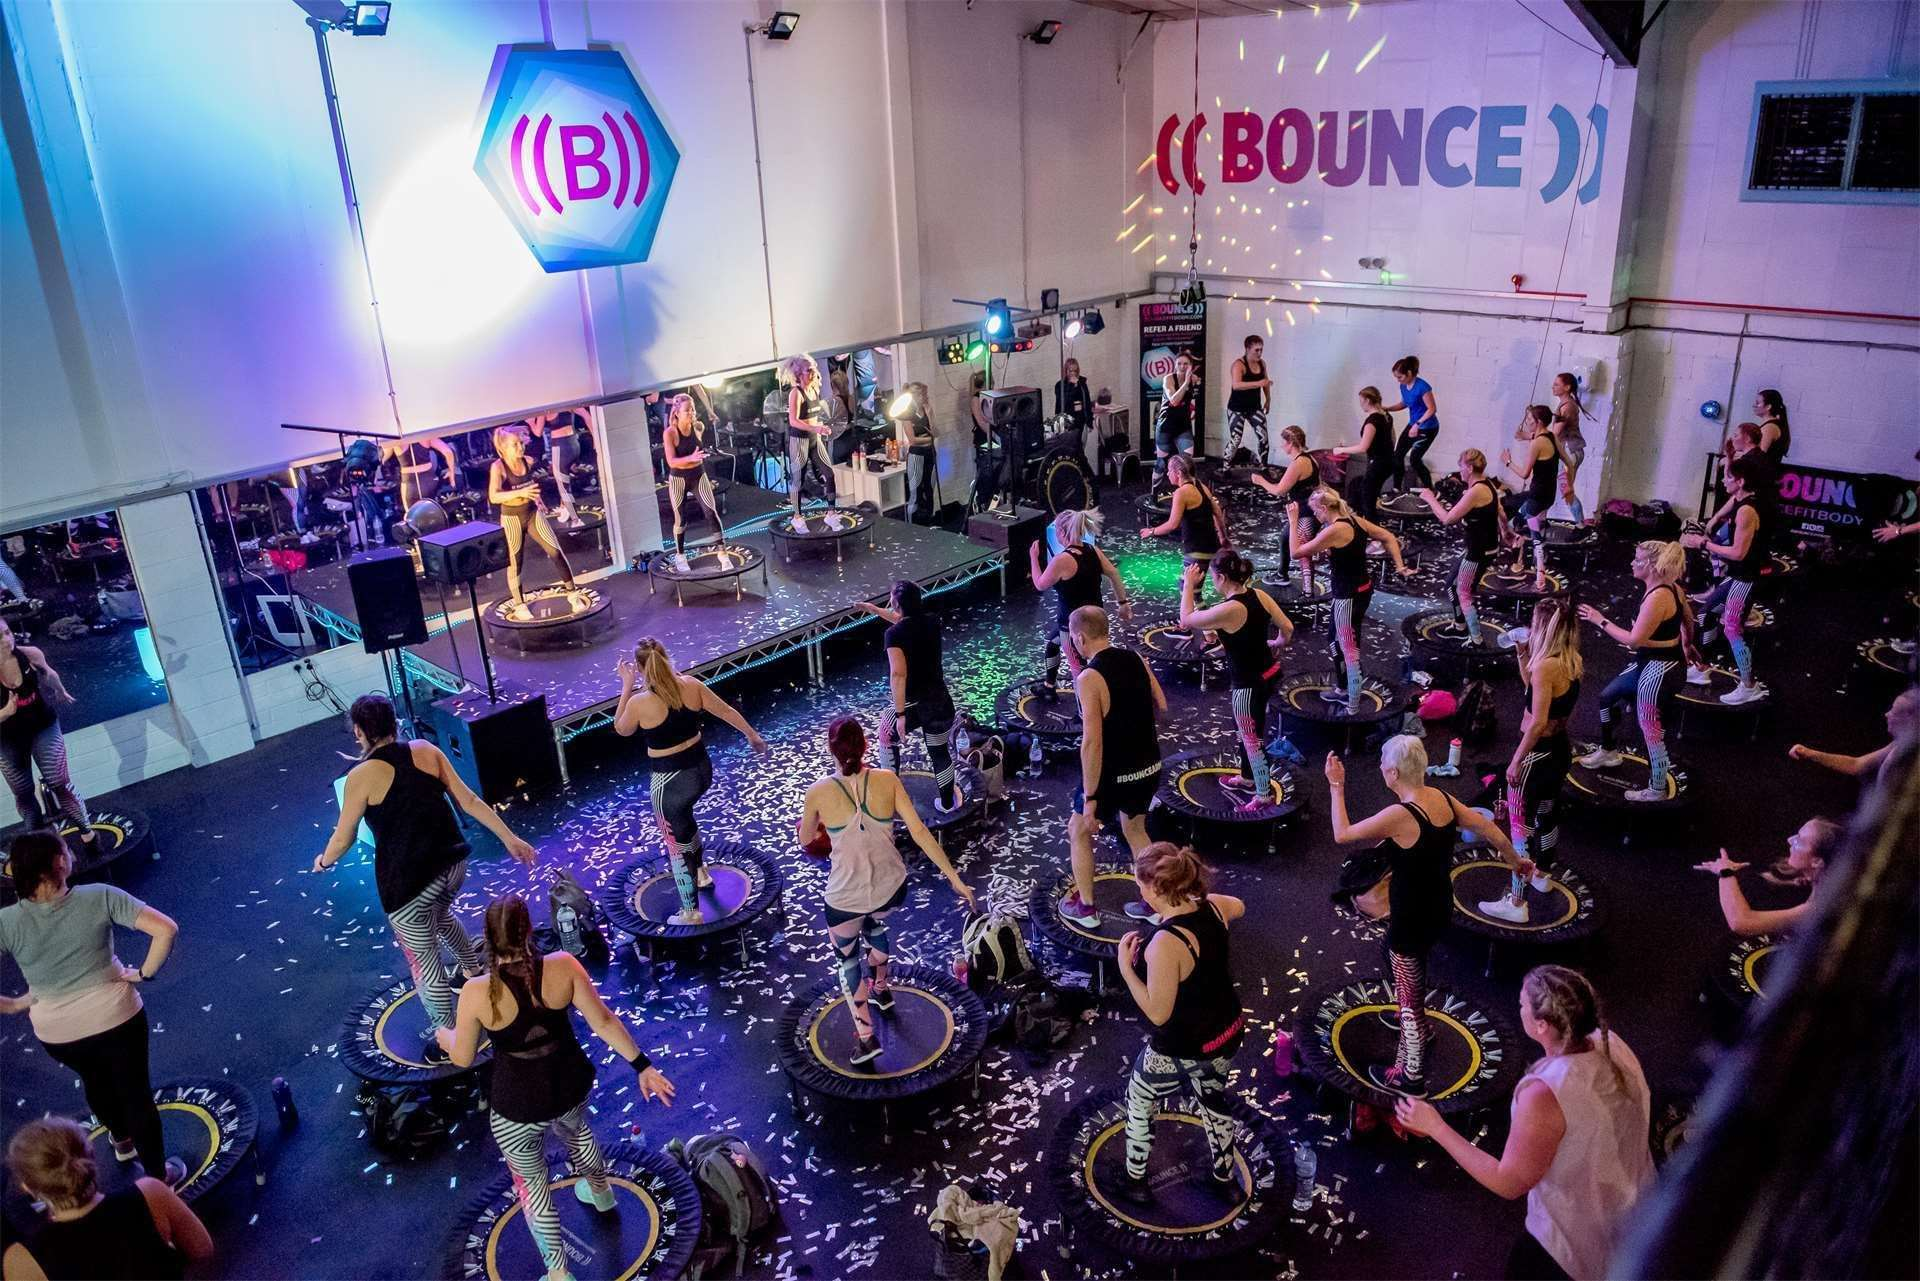 Getting fit using trampolines in a ((Bounce)) class (15153937)